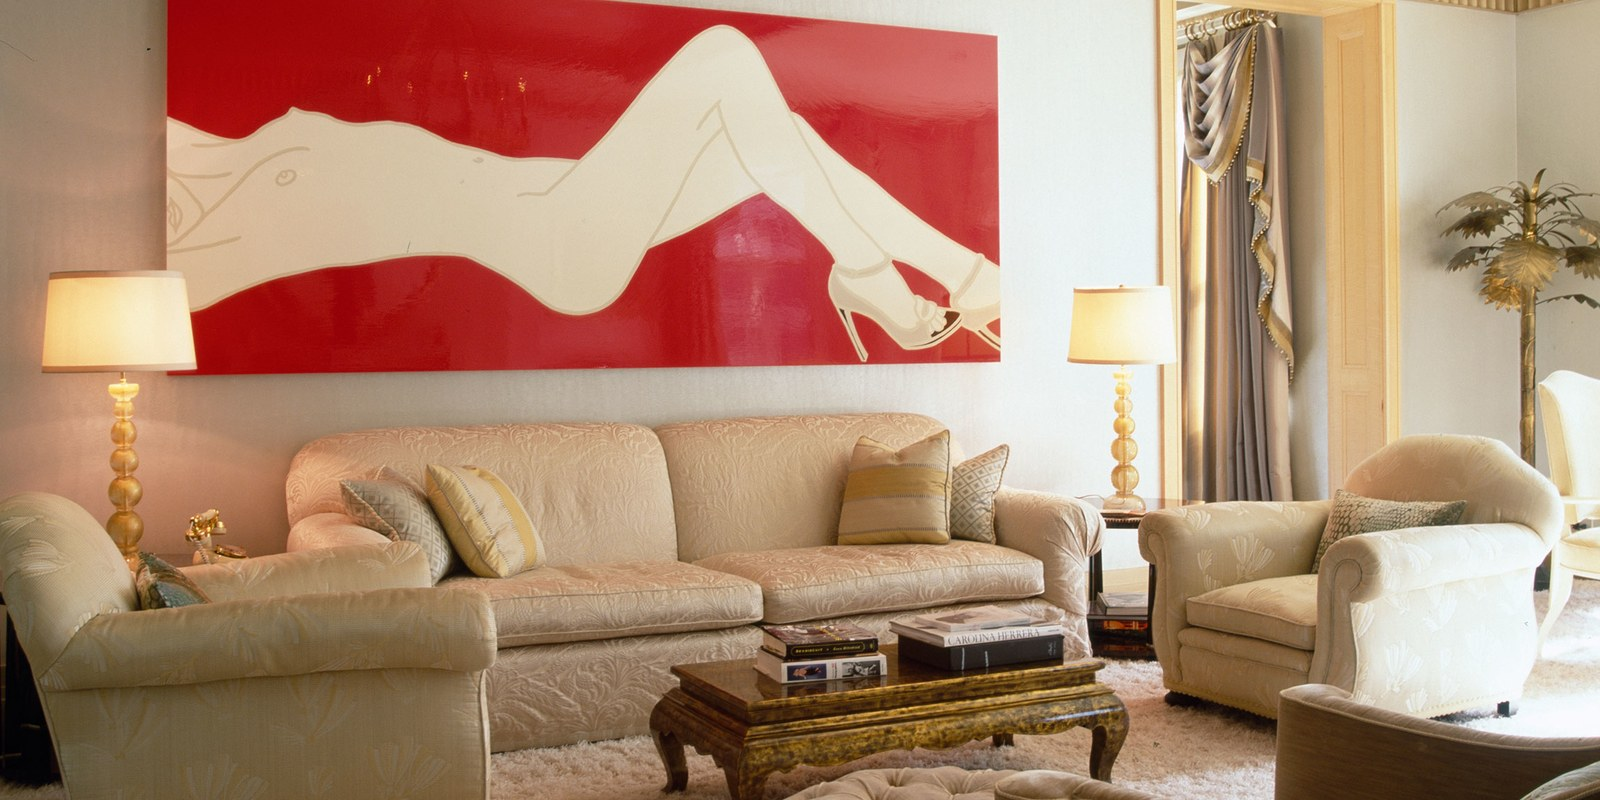 Kim Cattrall's New York City Apartment